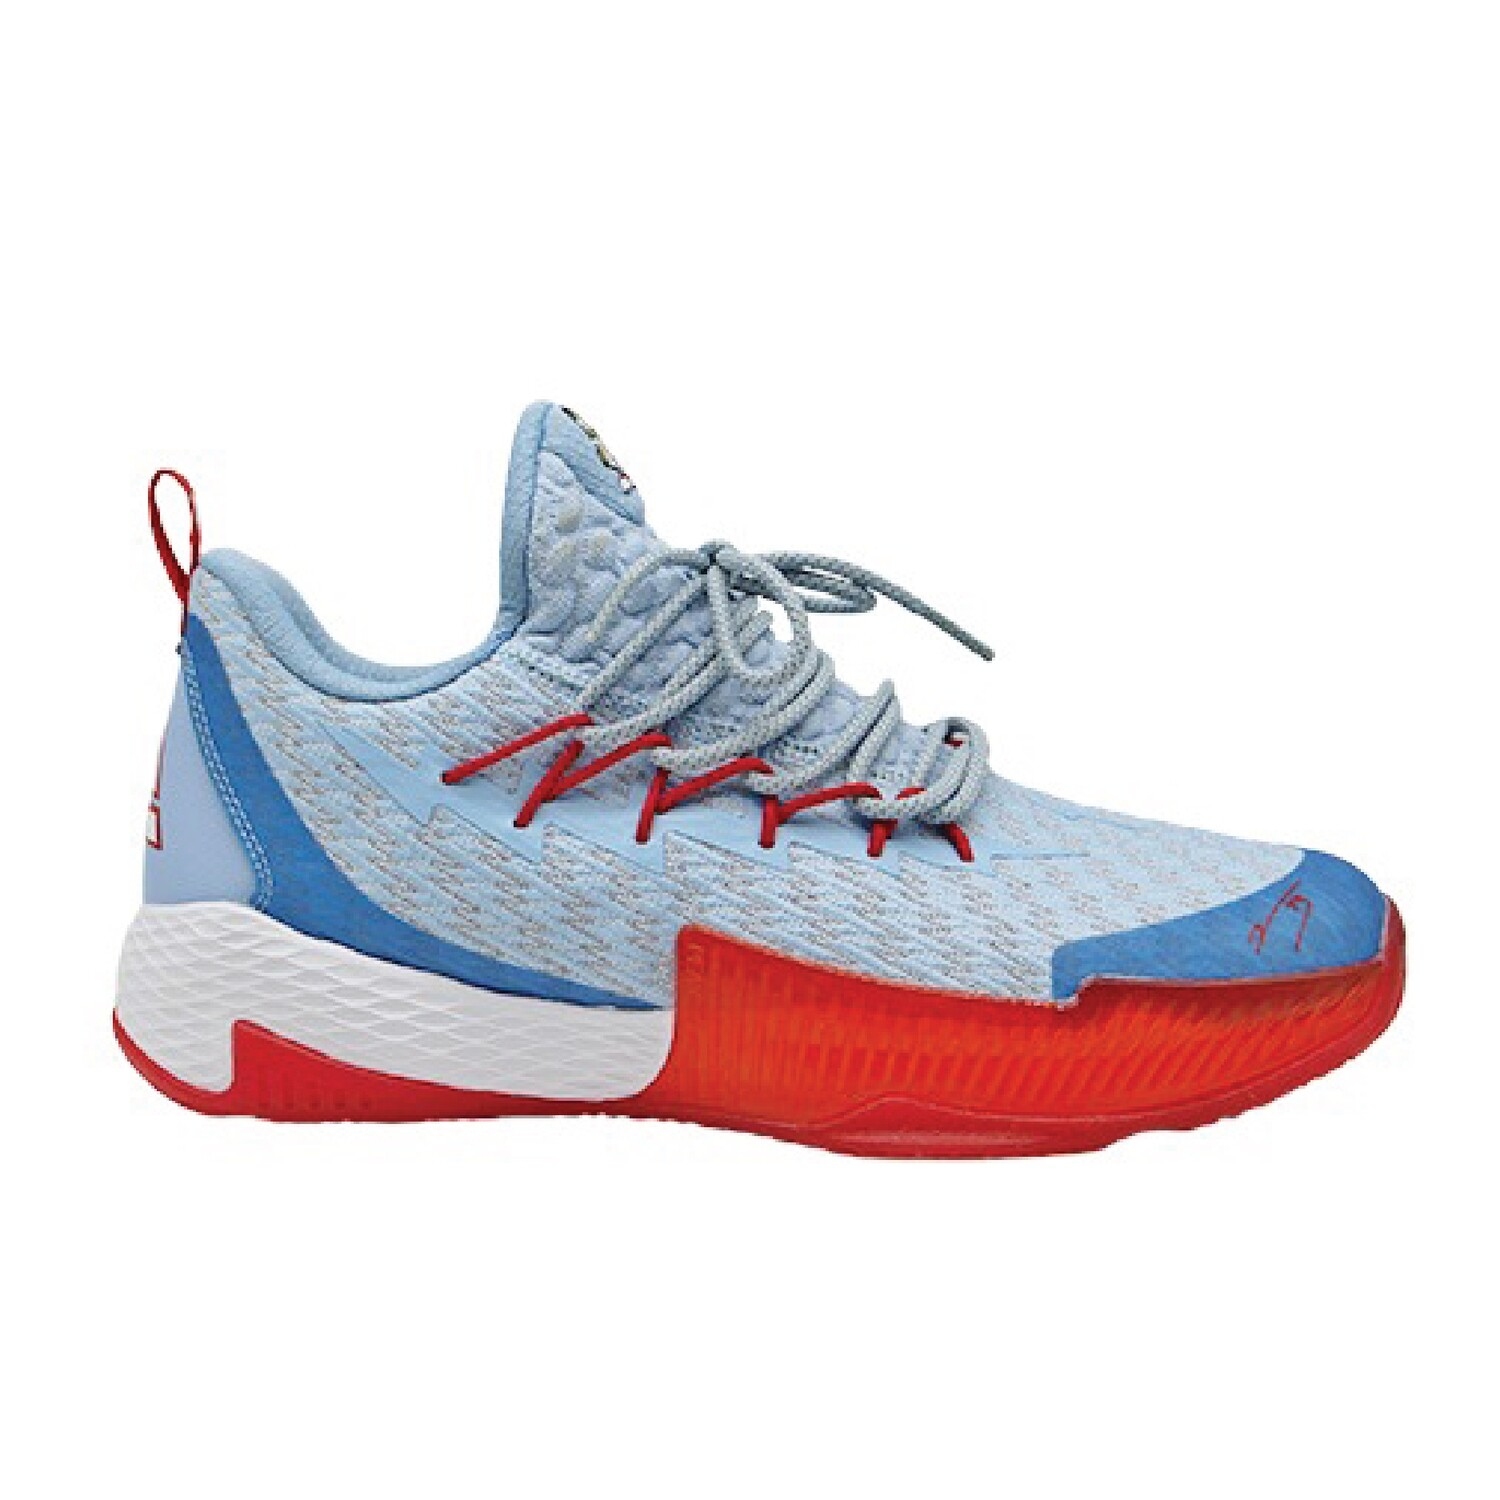 Lou Williams 2 Basketball Shoes (Sky Blue)